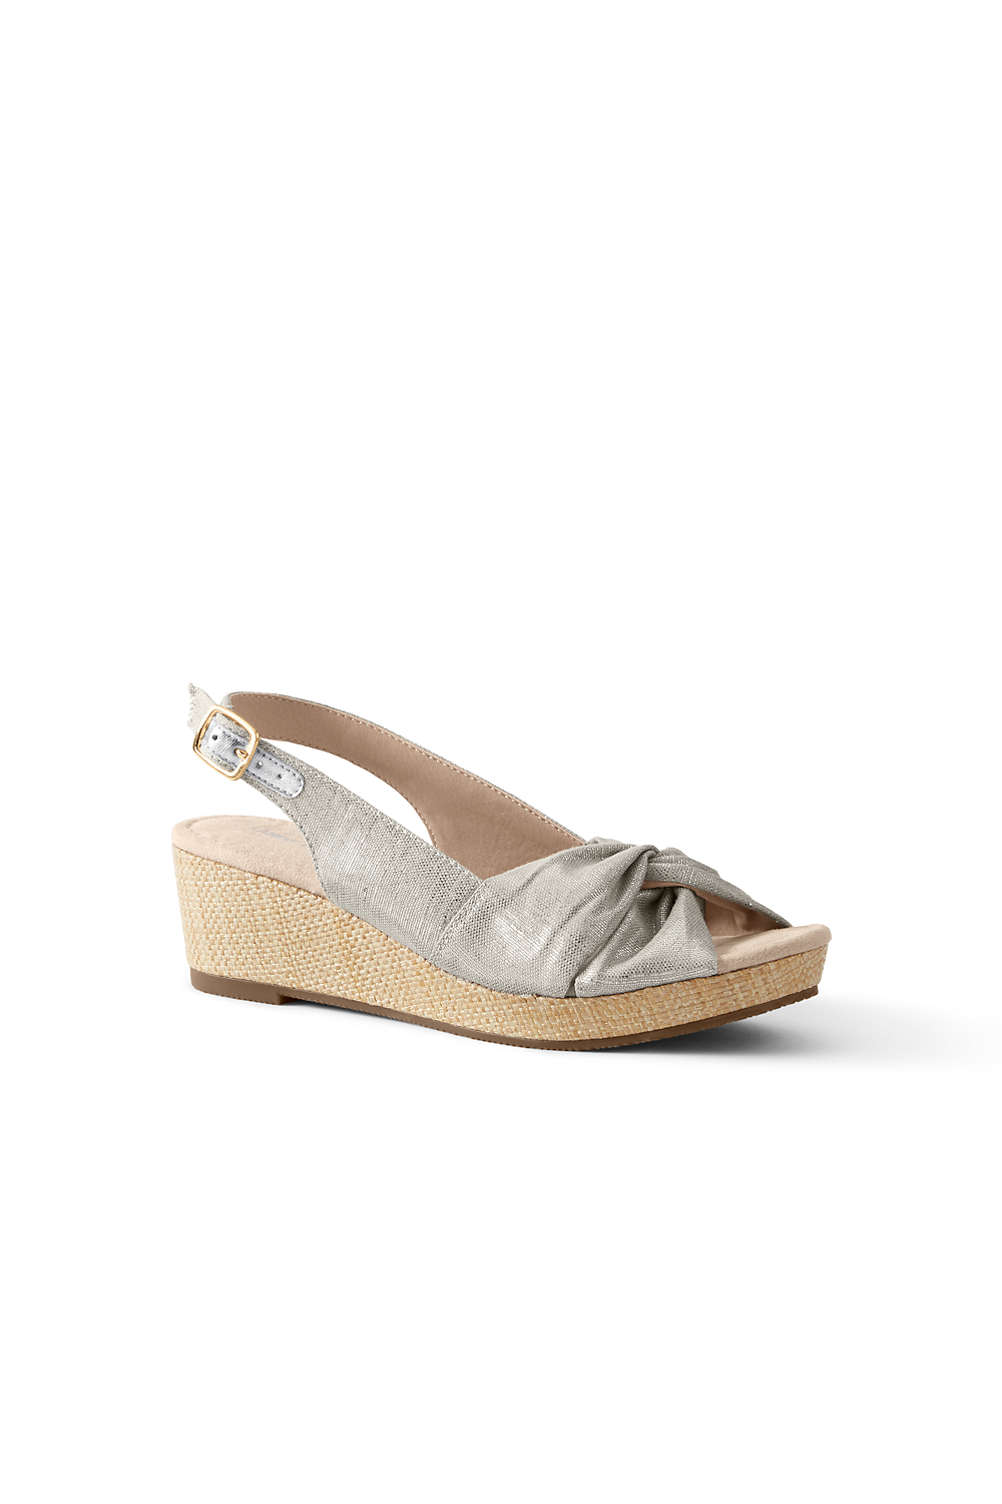 a38c07a0082 Women s Canvas Slingback Wedge Sandals from Lands  End